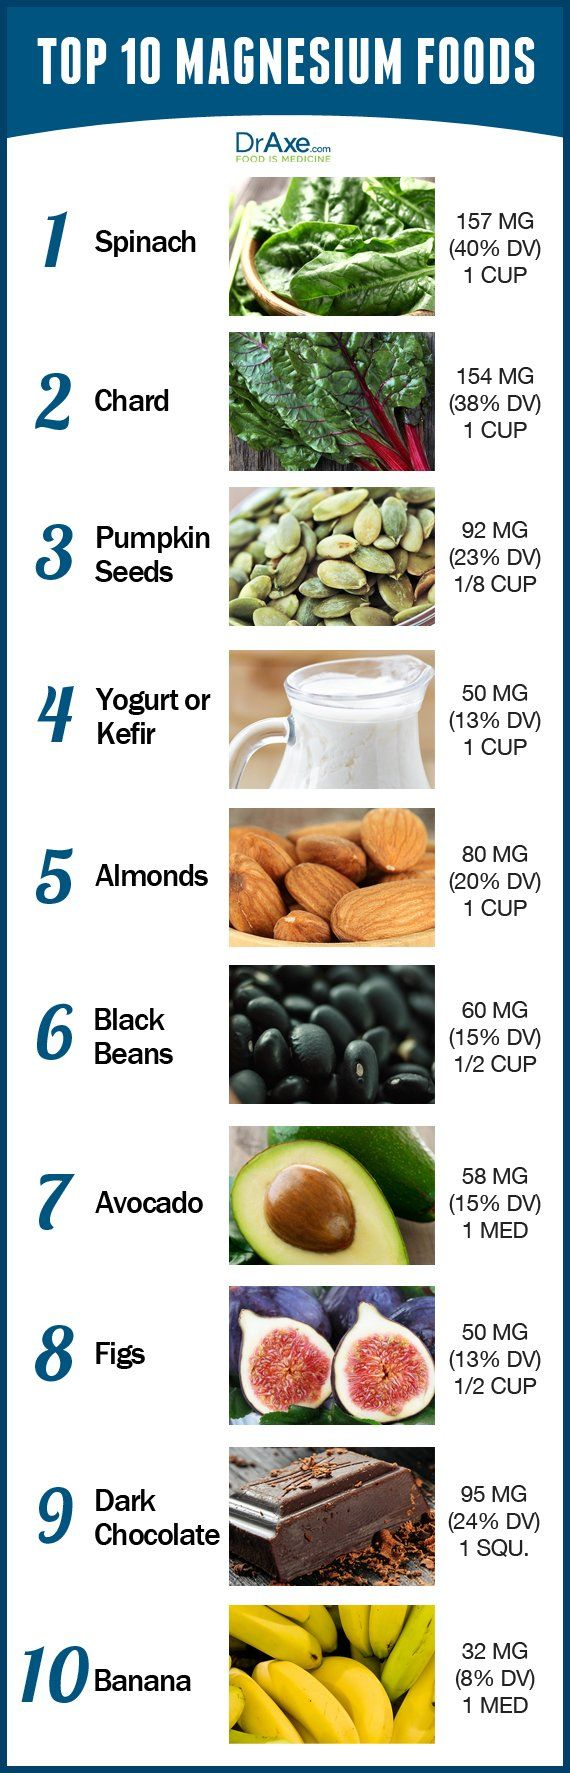 Magnesium Deficiency and Magnesium Benefits:  Top 10 Magnesium Rich Foods | http://draxe.com/magnesium-deficient-top-10-magnesium-rich-foods-must-eating/